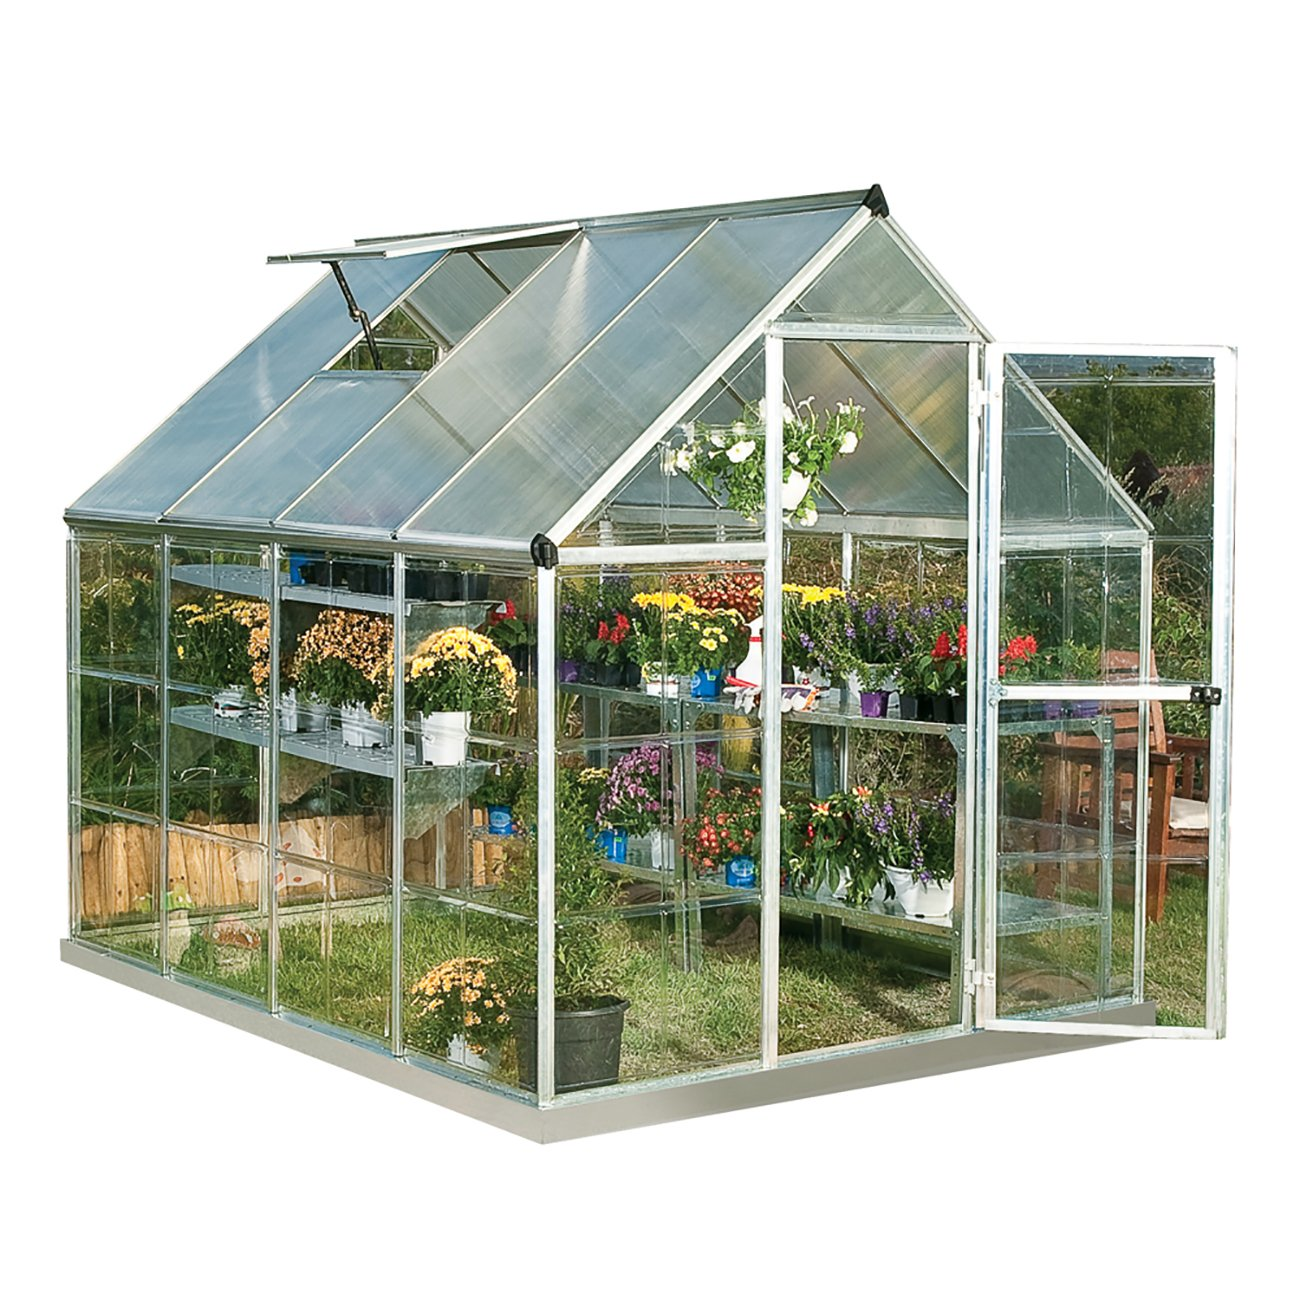 Palram Hybrid Greenhouse - 6' x 8' - Silver, Plant Hangers Included